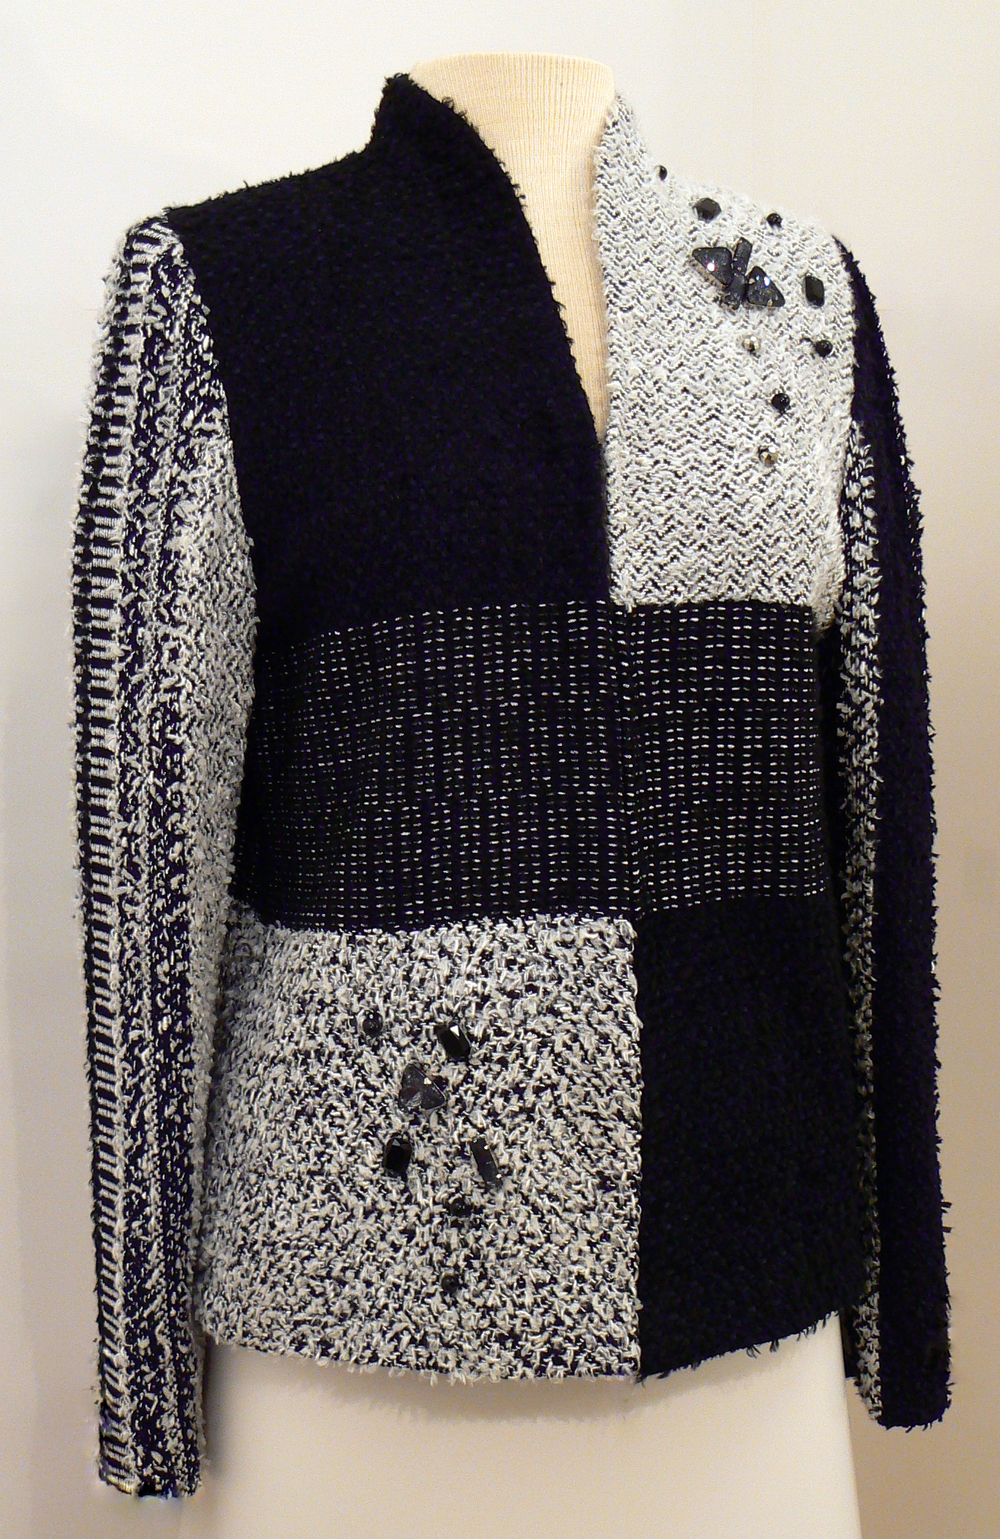 Handwoven Clothing, Jacket, Kathleen Weir-West, 14-002.JPG